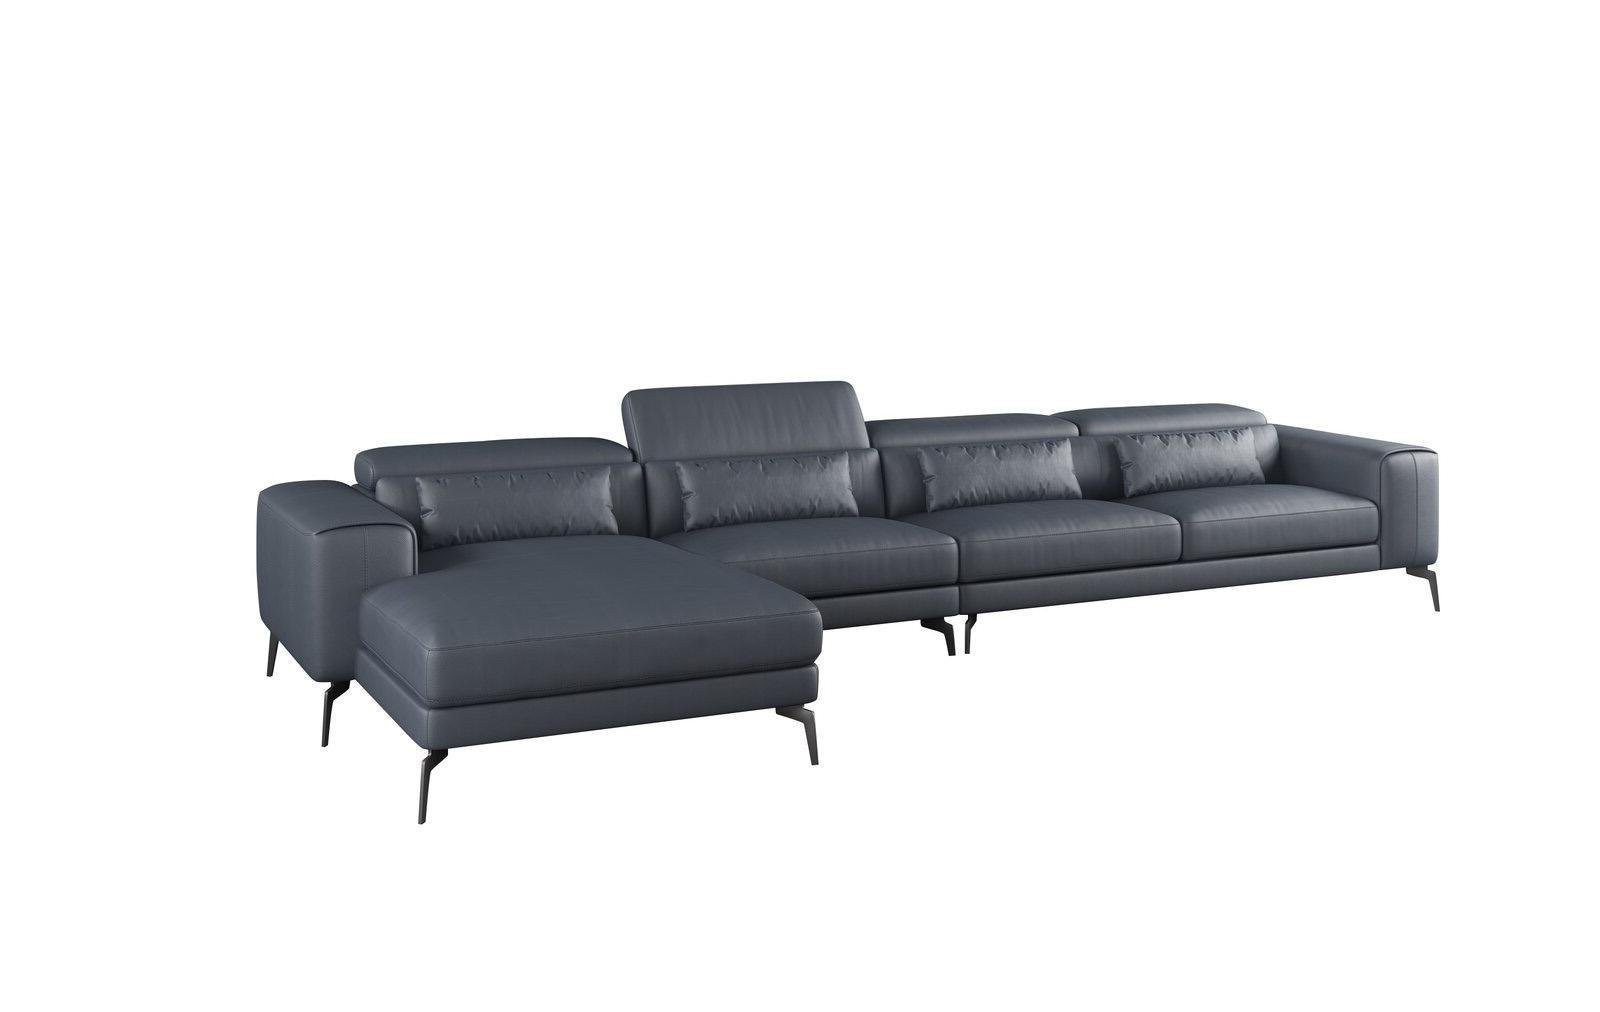 Contemporary, Modern Gray, Smoke Leather and Wood, Solid Hardwood 4-seat Sectional Sofa LHC CAVOUR by European Furniture